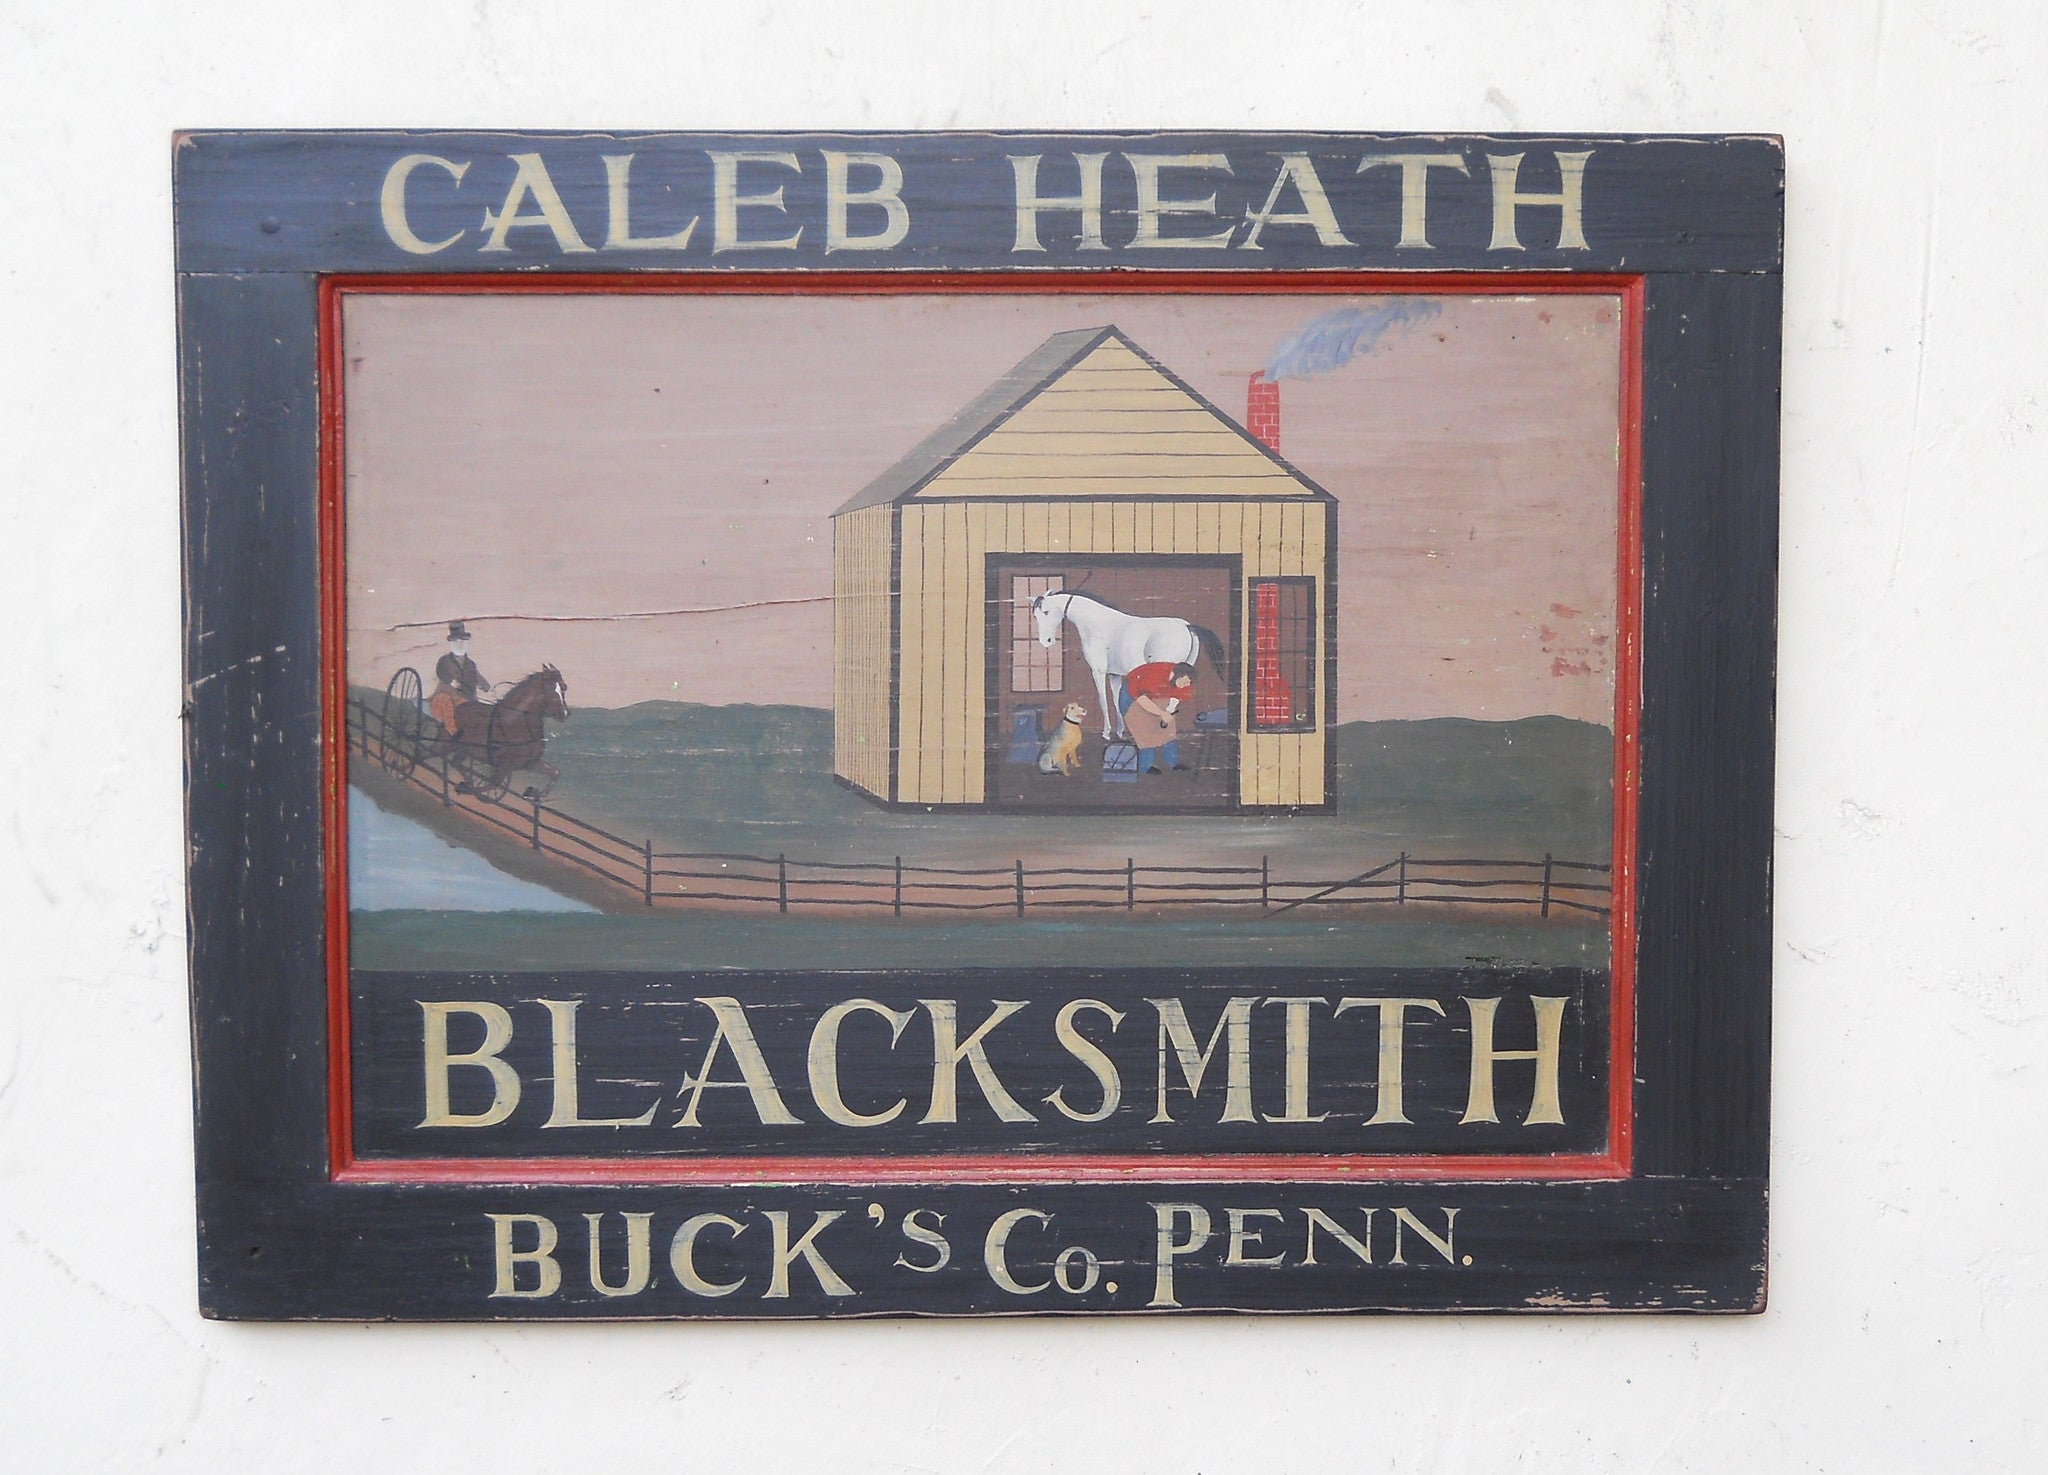 Caleb Heath Blacksmith